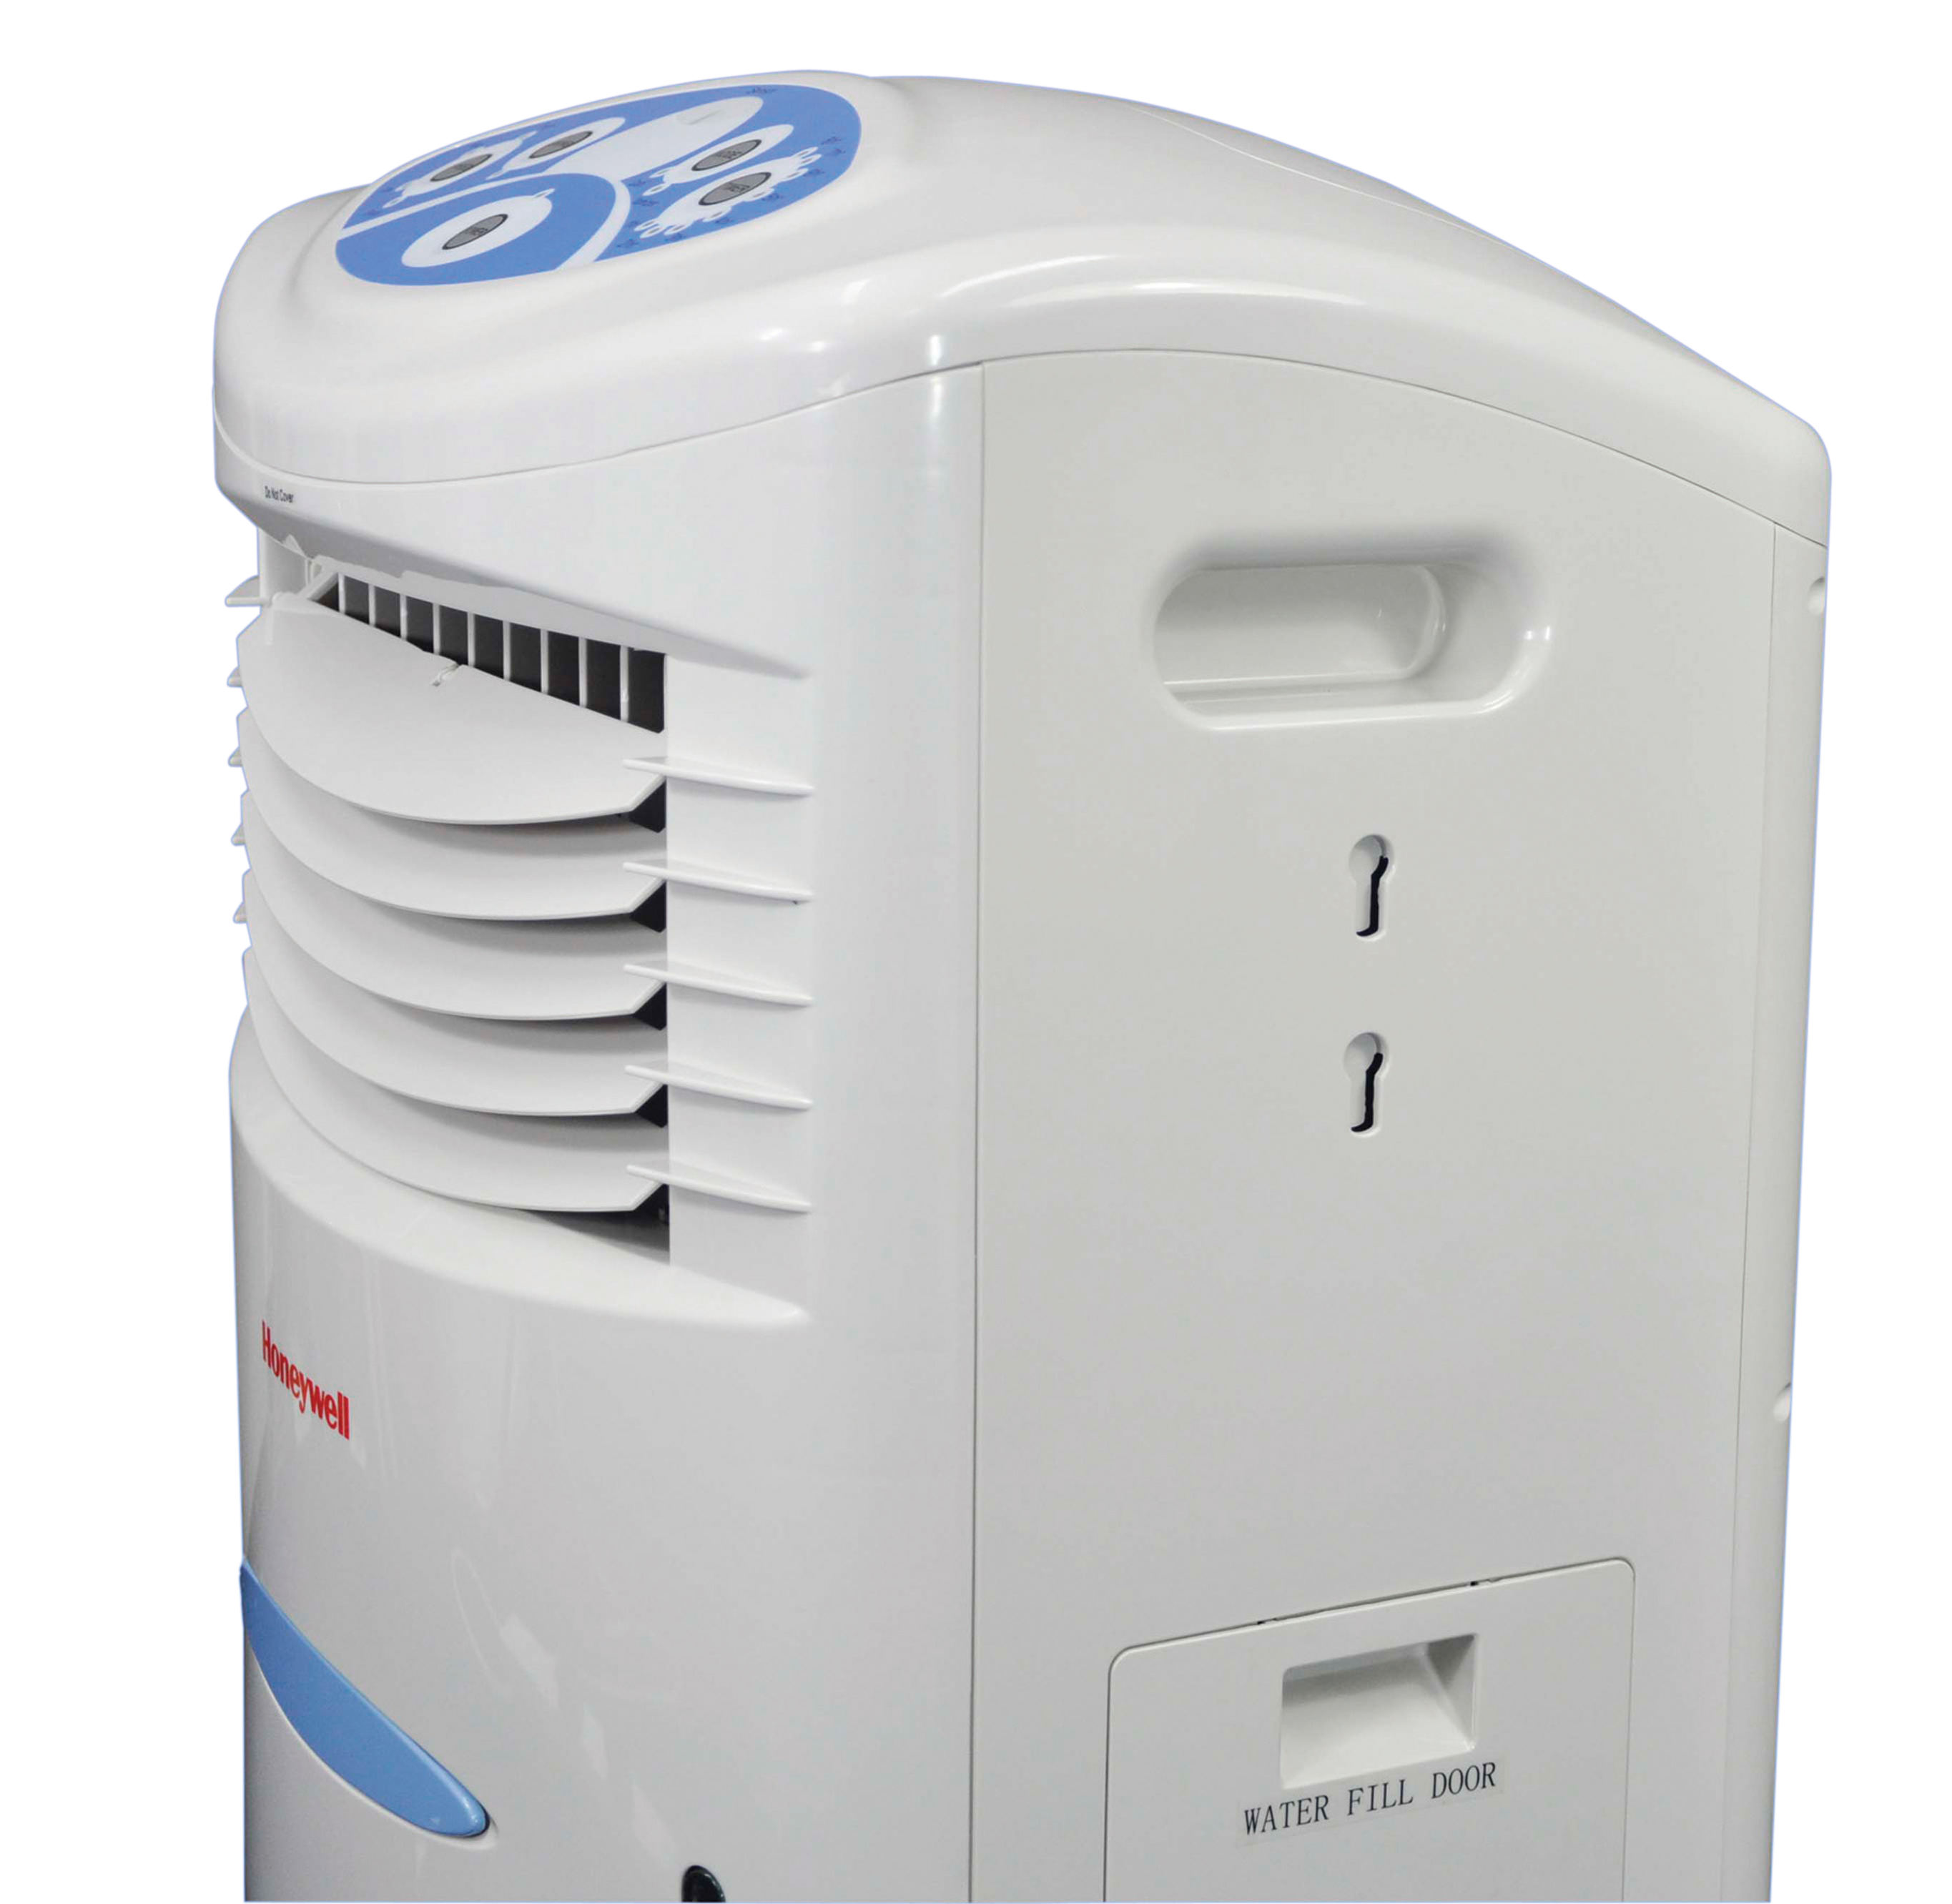 Evaporative Water Cooler : Honeywell remote control evaporative air cooler with l